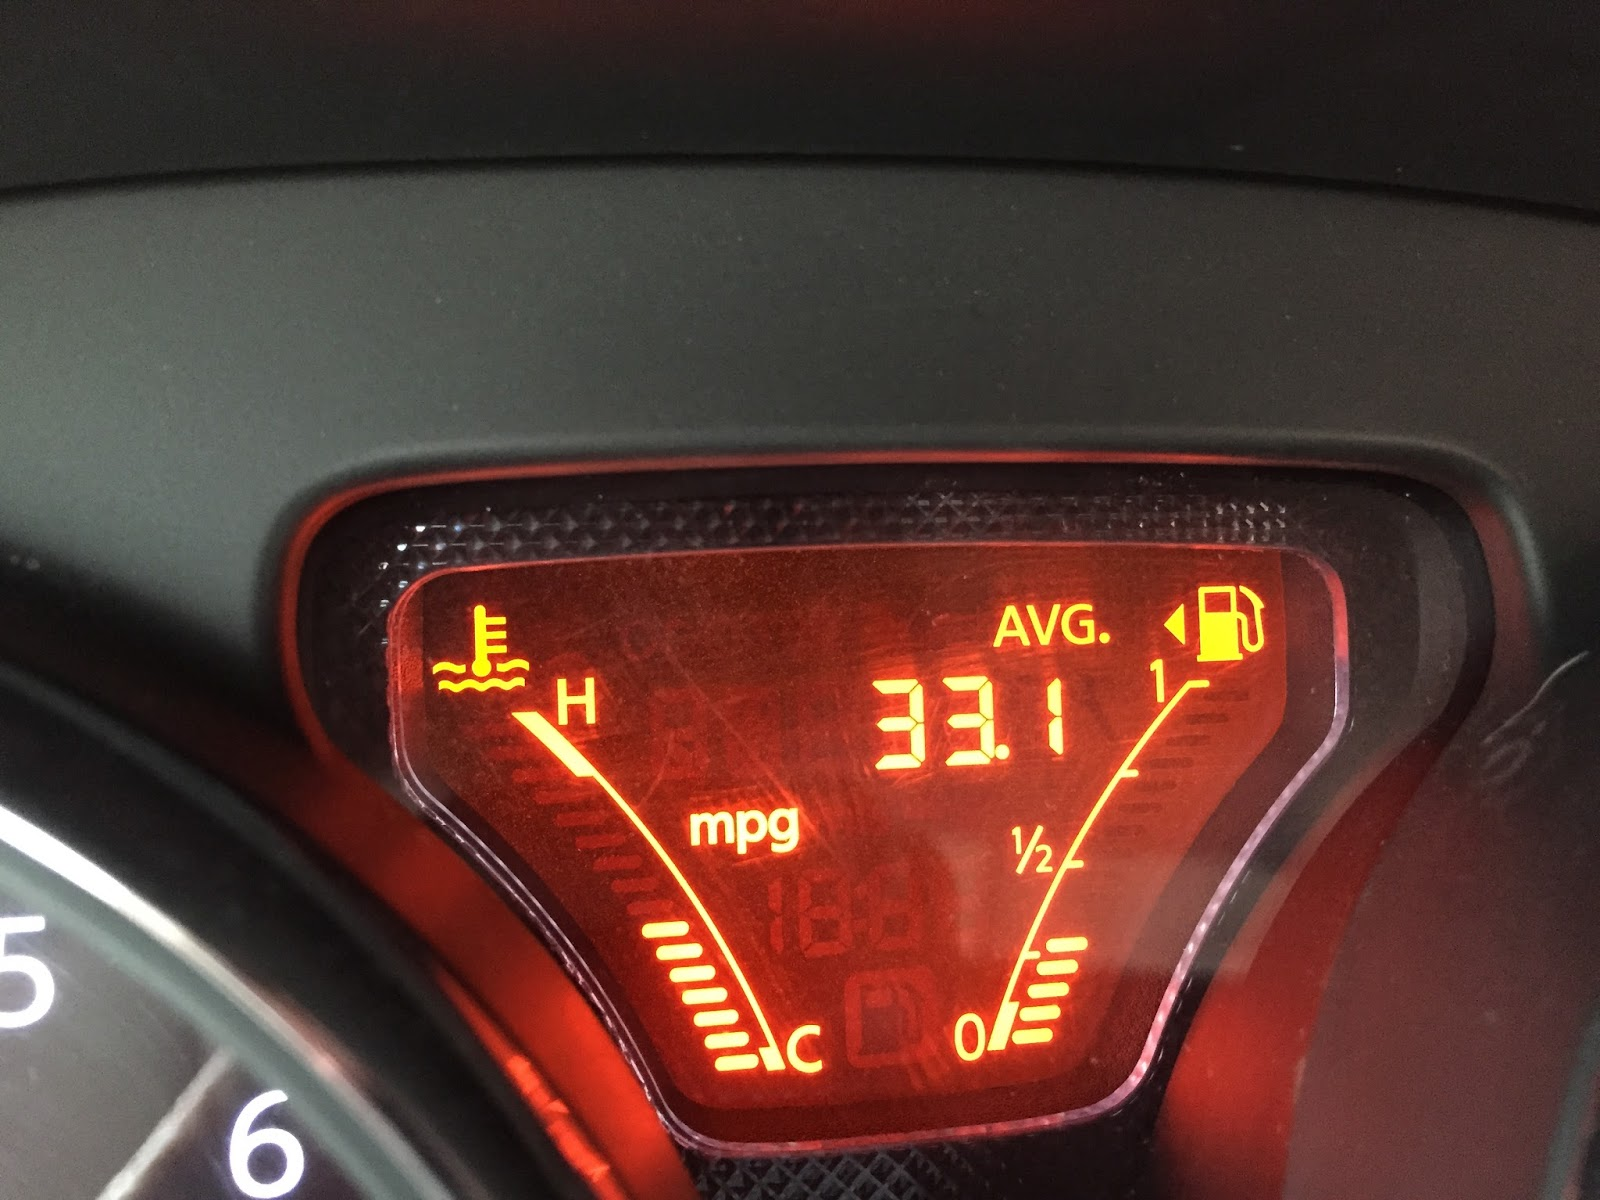 mileage report 10982 miles on 2014 nissan versa sv with 33 1 avg mpg. Black Bedroom Furniture Sets. Home Design Ideas